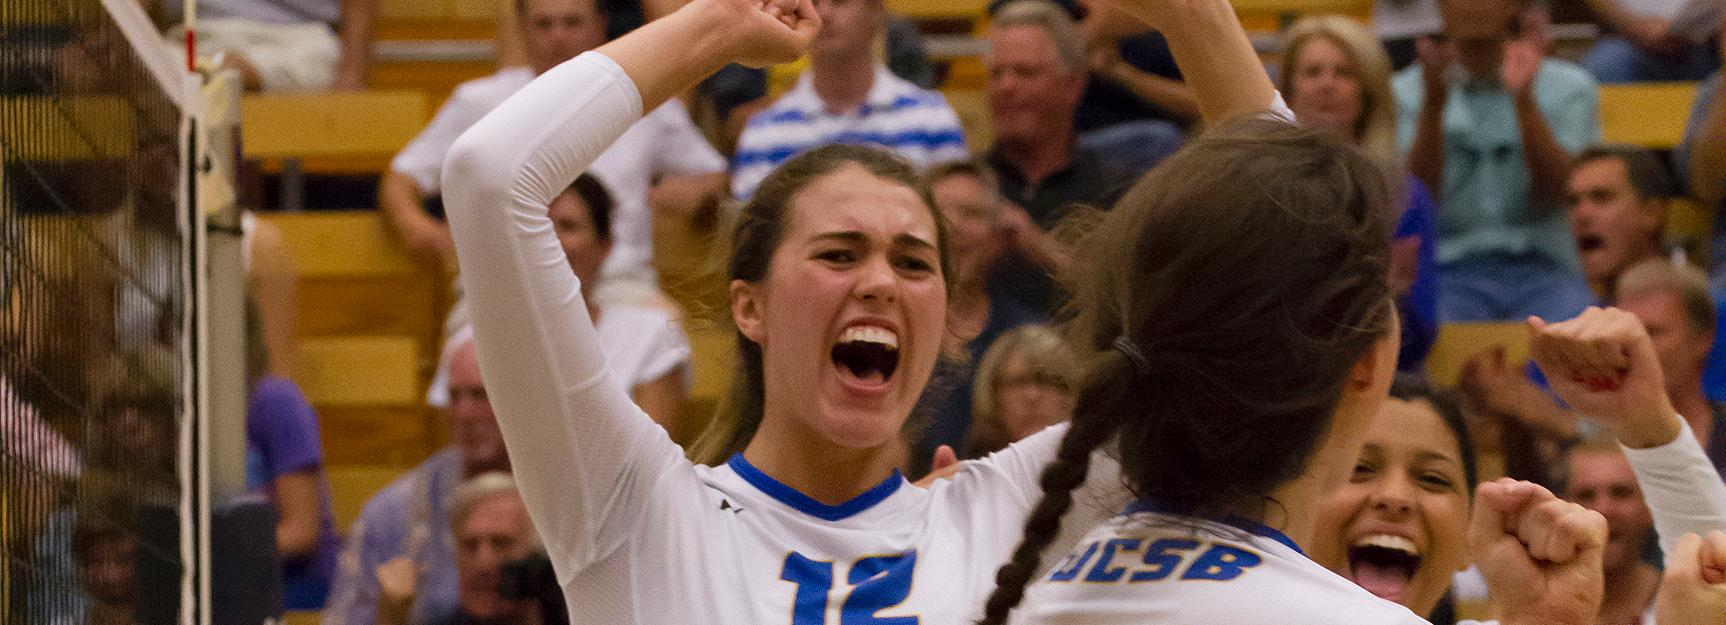 UCSB Women's Volleyball Prepares for 2014 Season